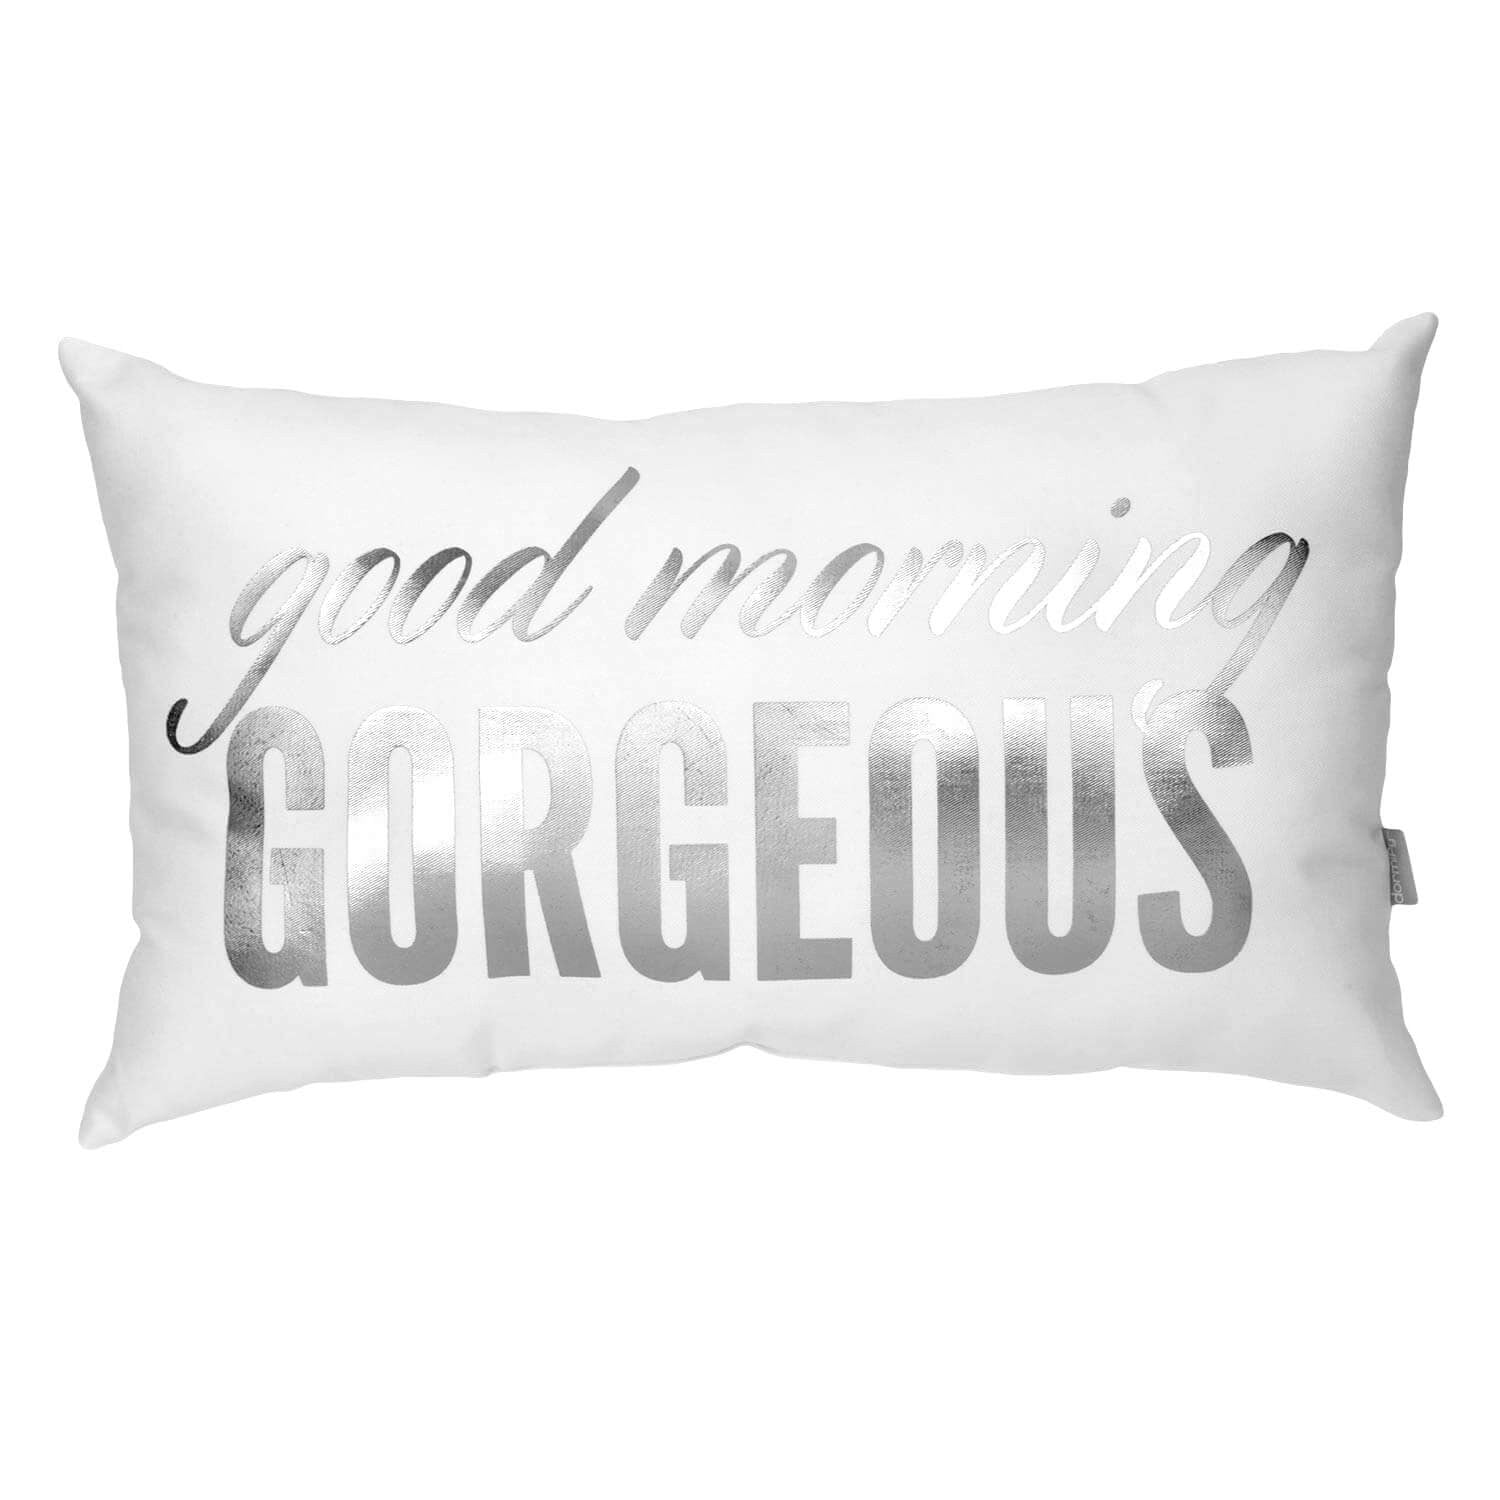 Good Morning Gorgeous Pillow - Gold